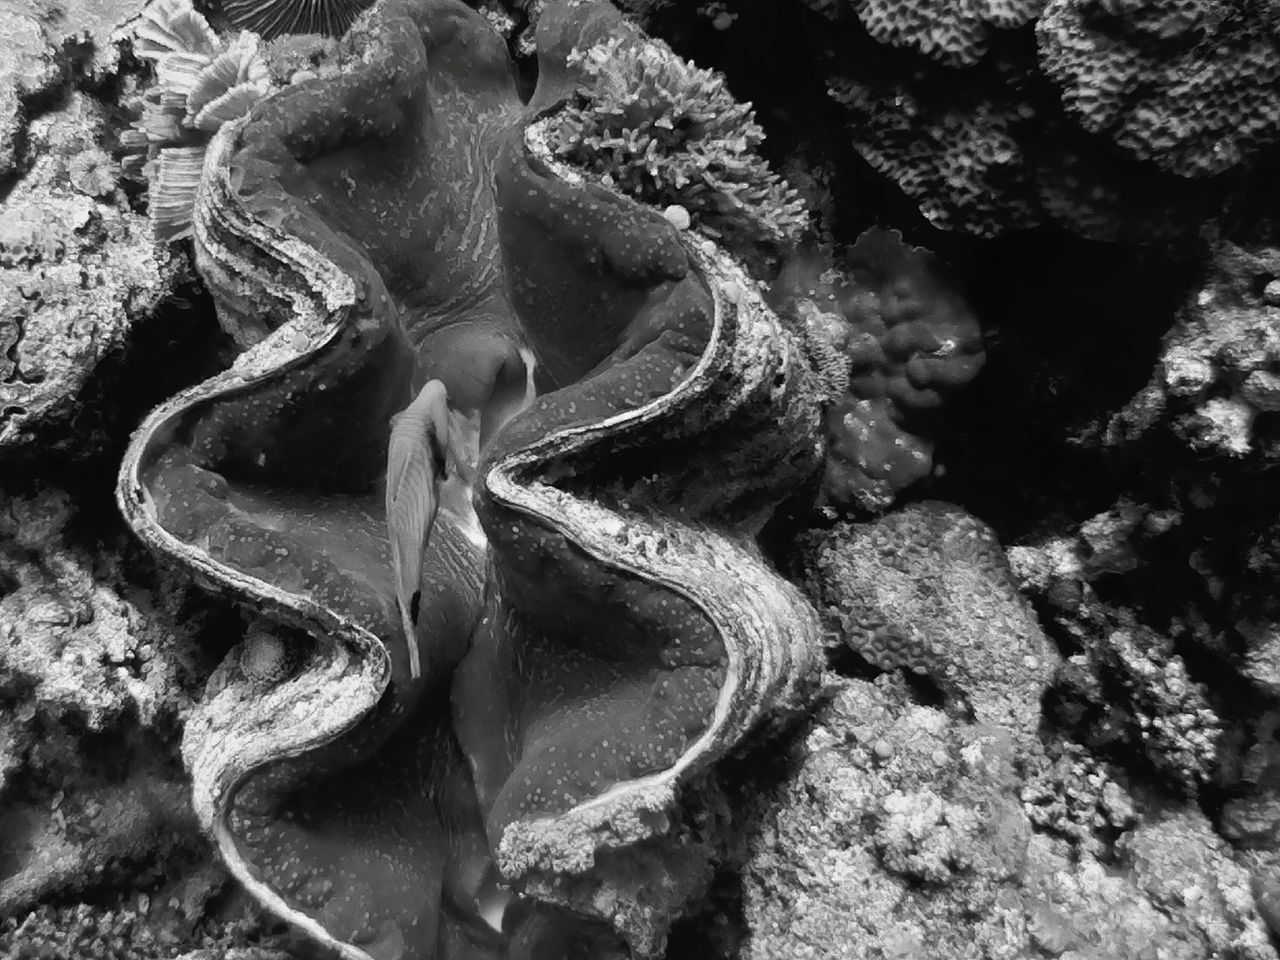 giant clam Vacations Beauty In Nature Anilao, Batangas UnderSea Underwater Sea UnderSea Sea Life Giant Clam Nature